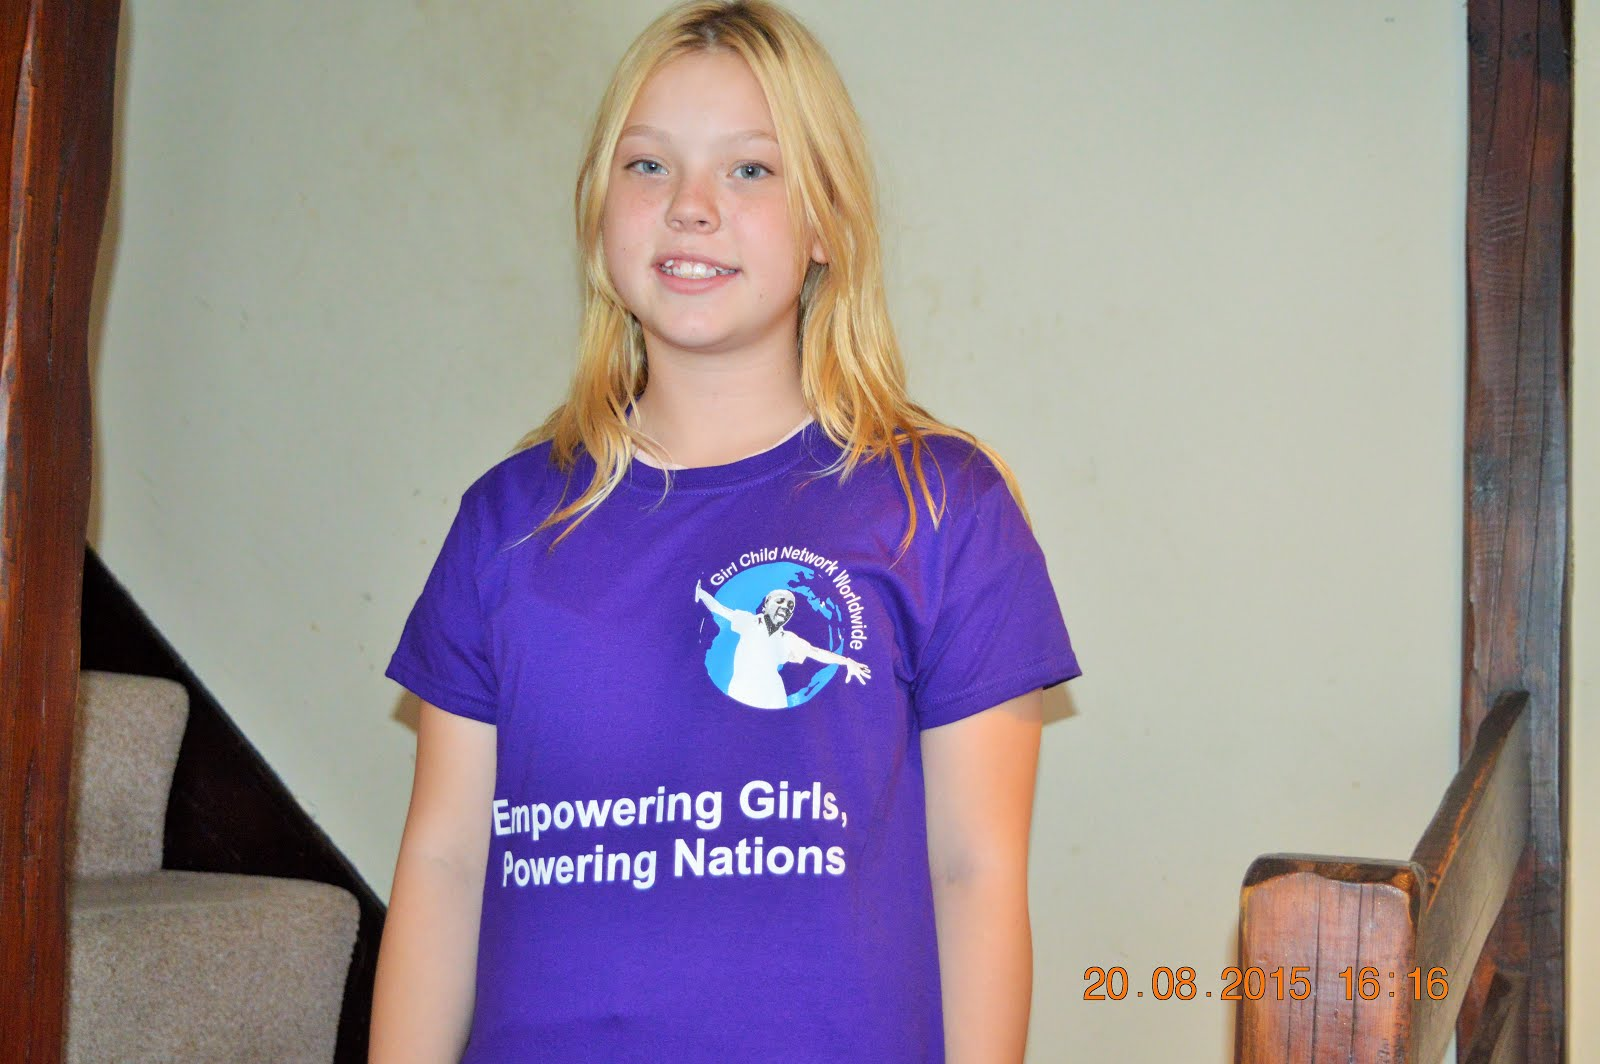 Empowering Girls, Powering Nations